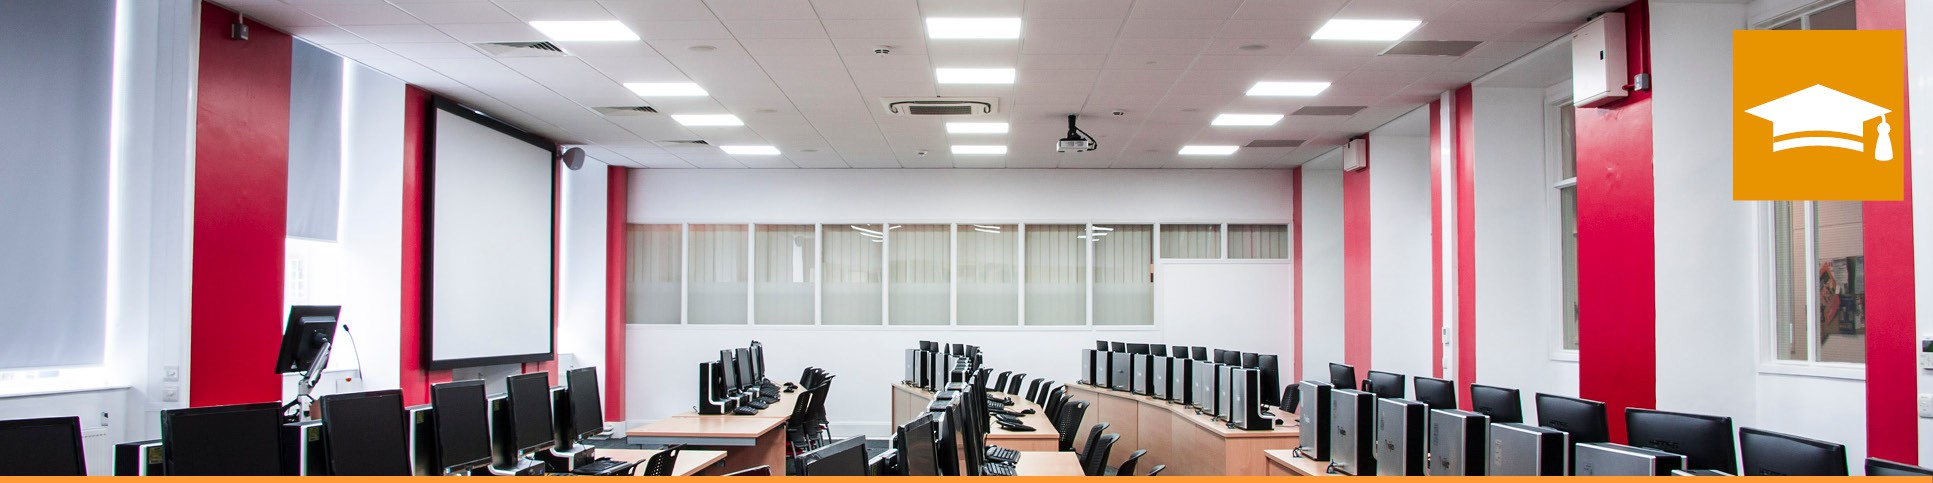 Lighting for Lecture Theatres